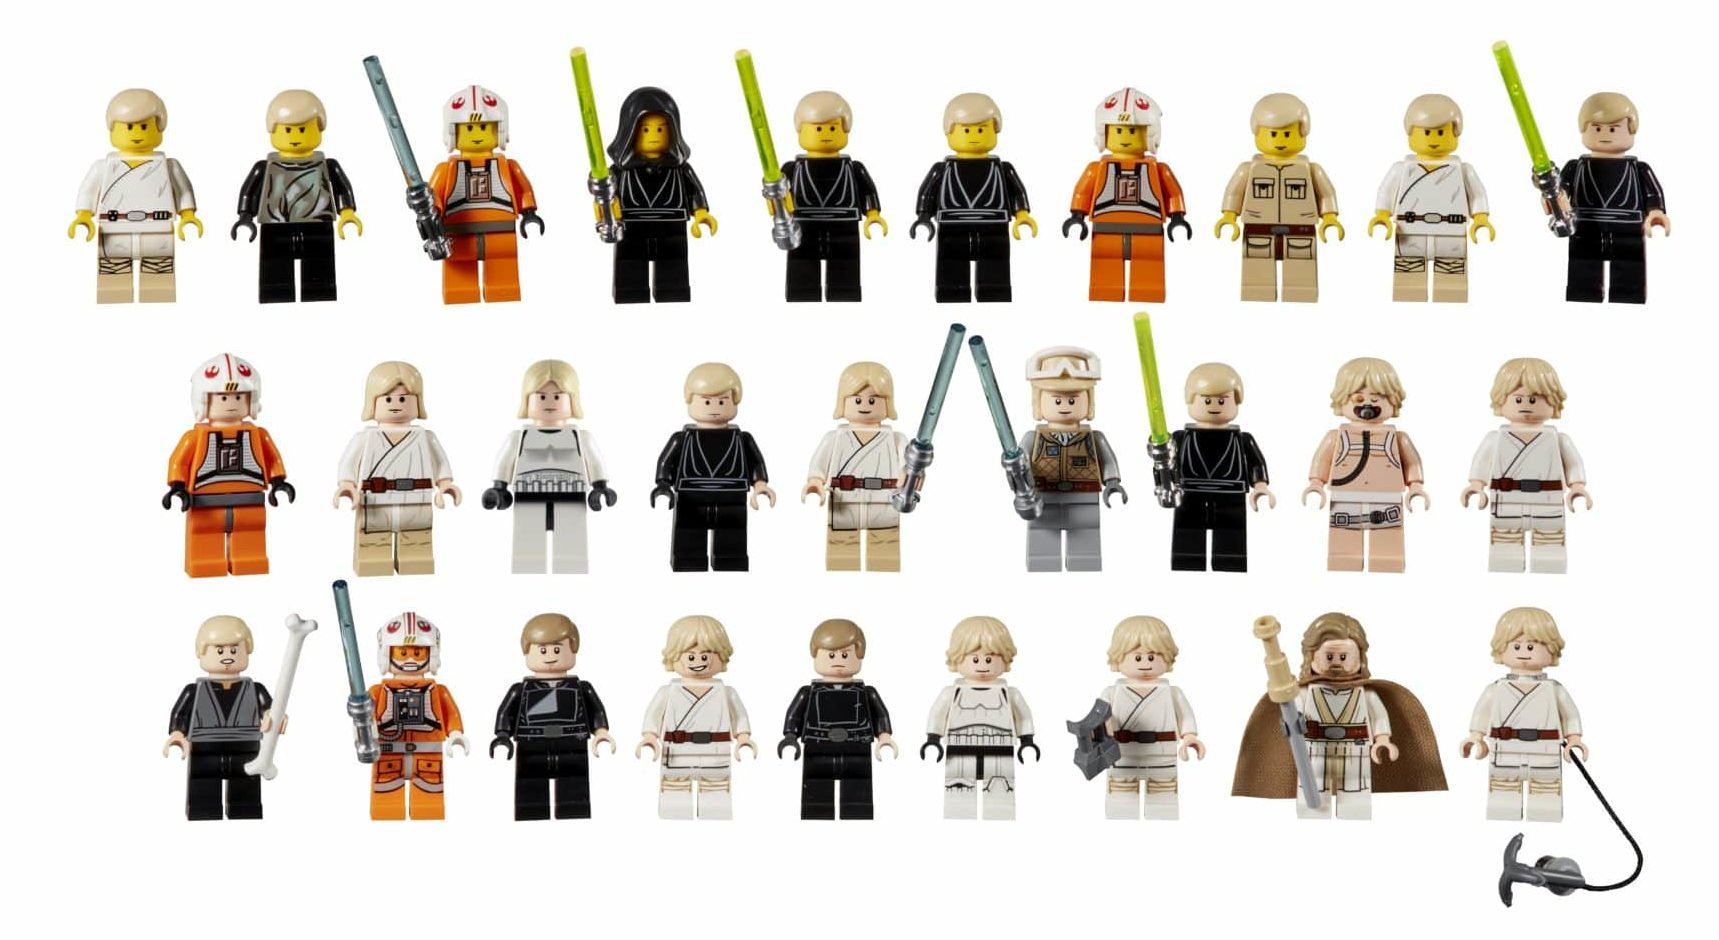 LEGO Star Wars Luke Skywalker Minifigur Evolution